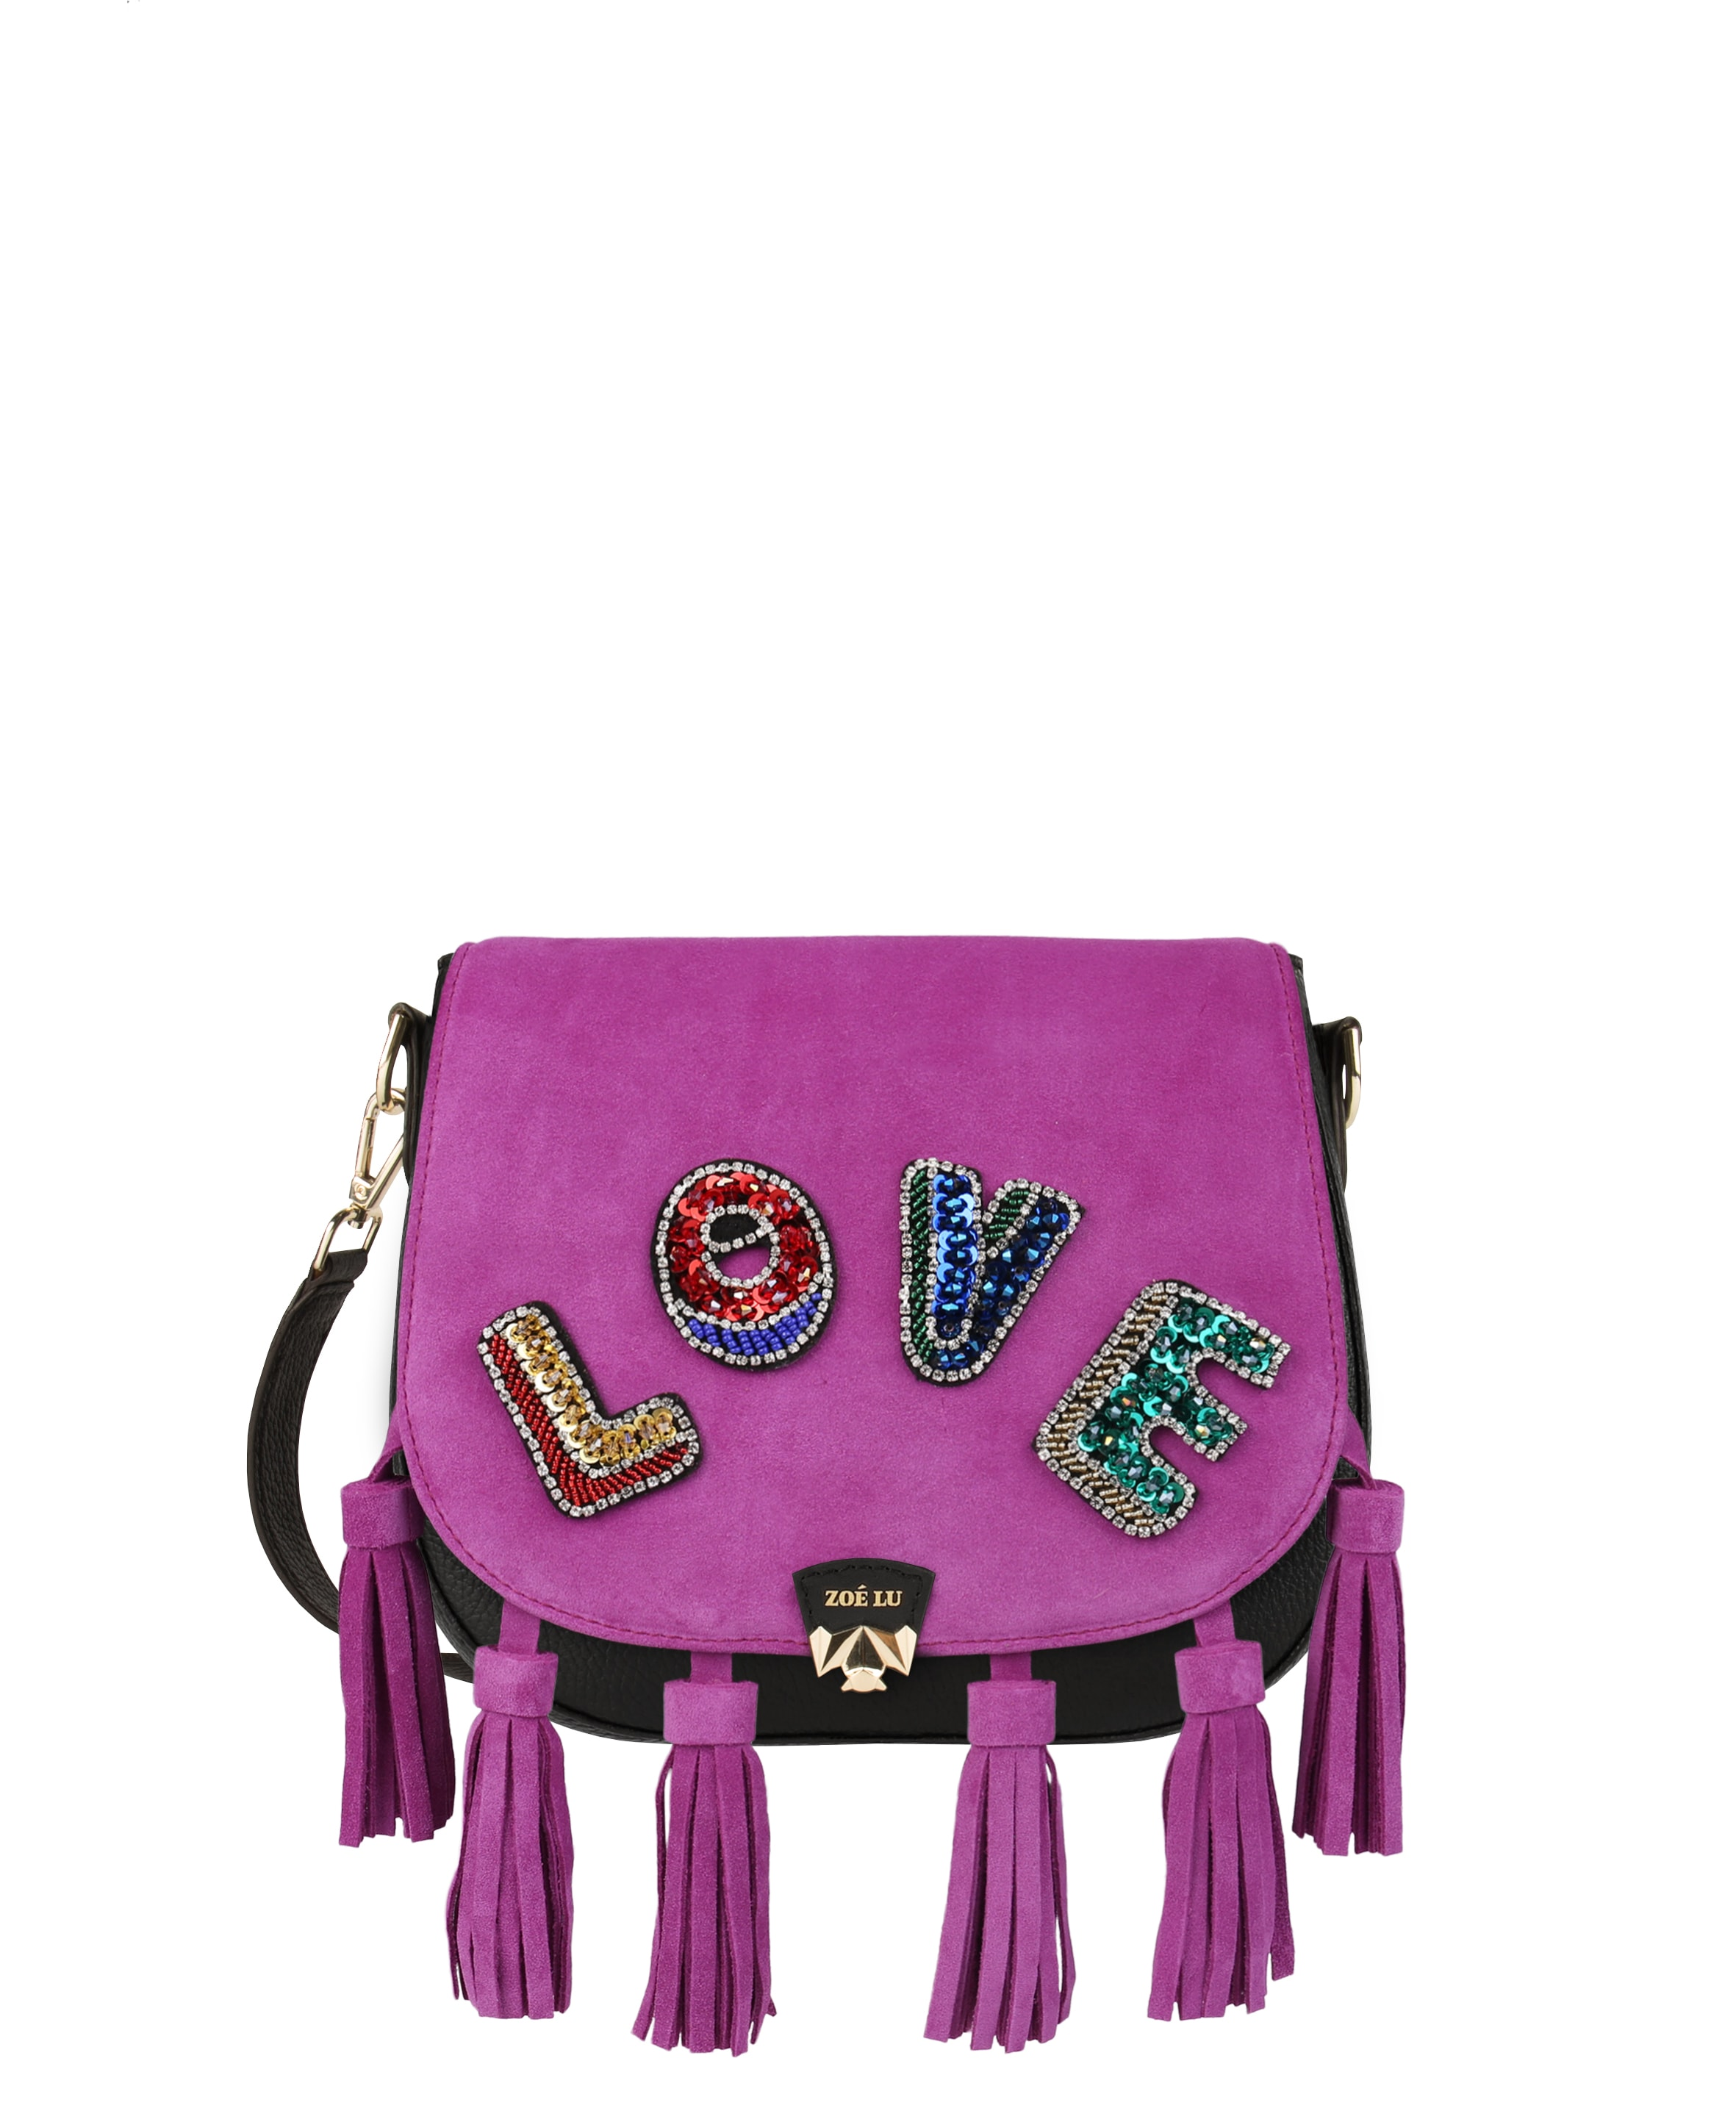 zoe-lu-tasche-bag-black-love-reloaded-fuchsia